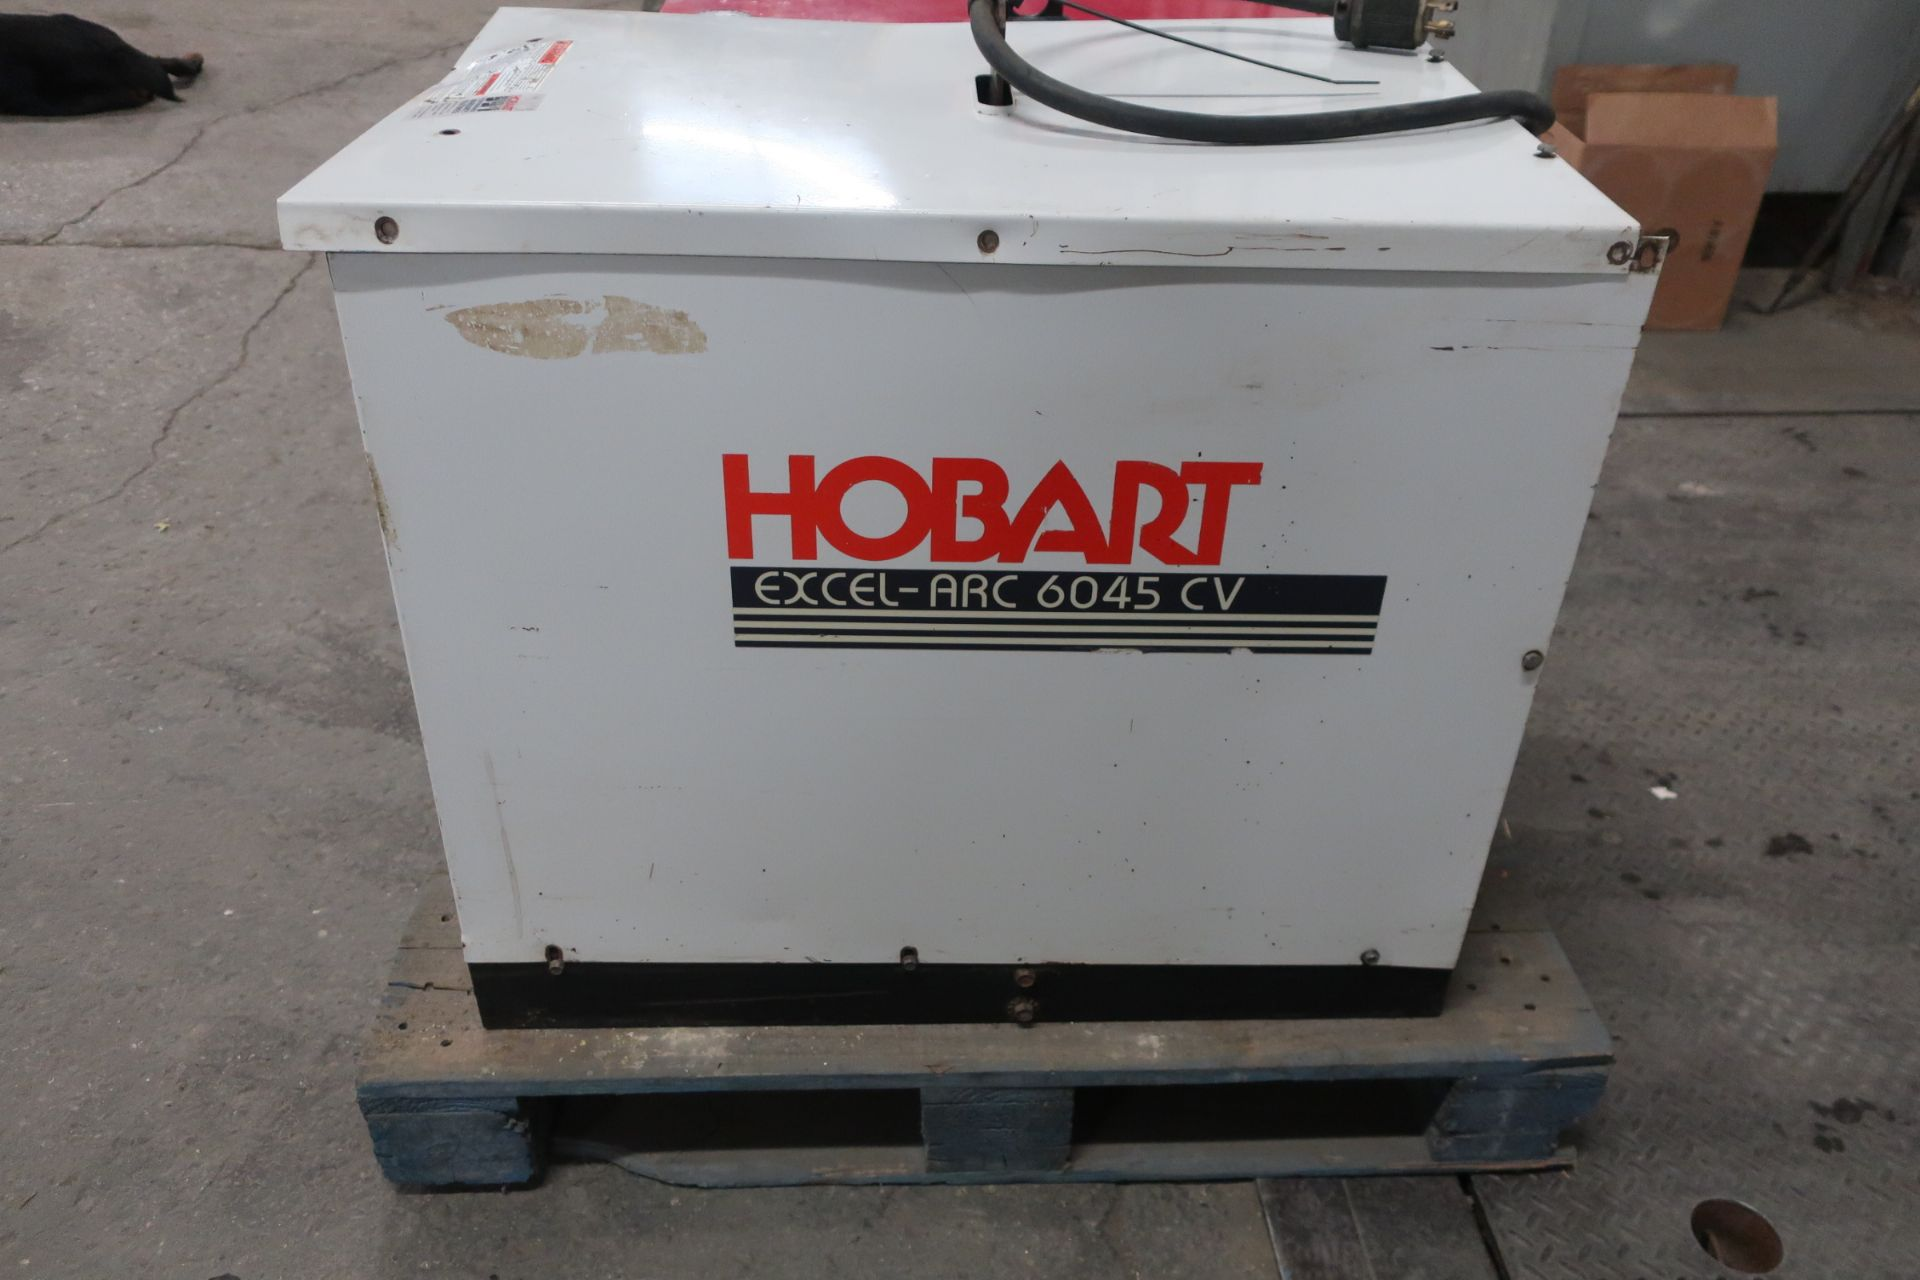 Hobart Thermal Arc Excel-Arc 6045 CV Mig Welding Power Source 450A unit - Image 2 of 2